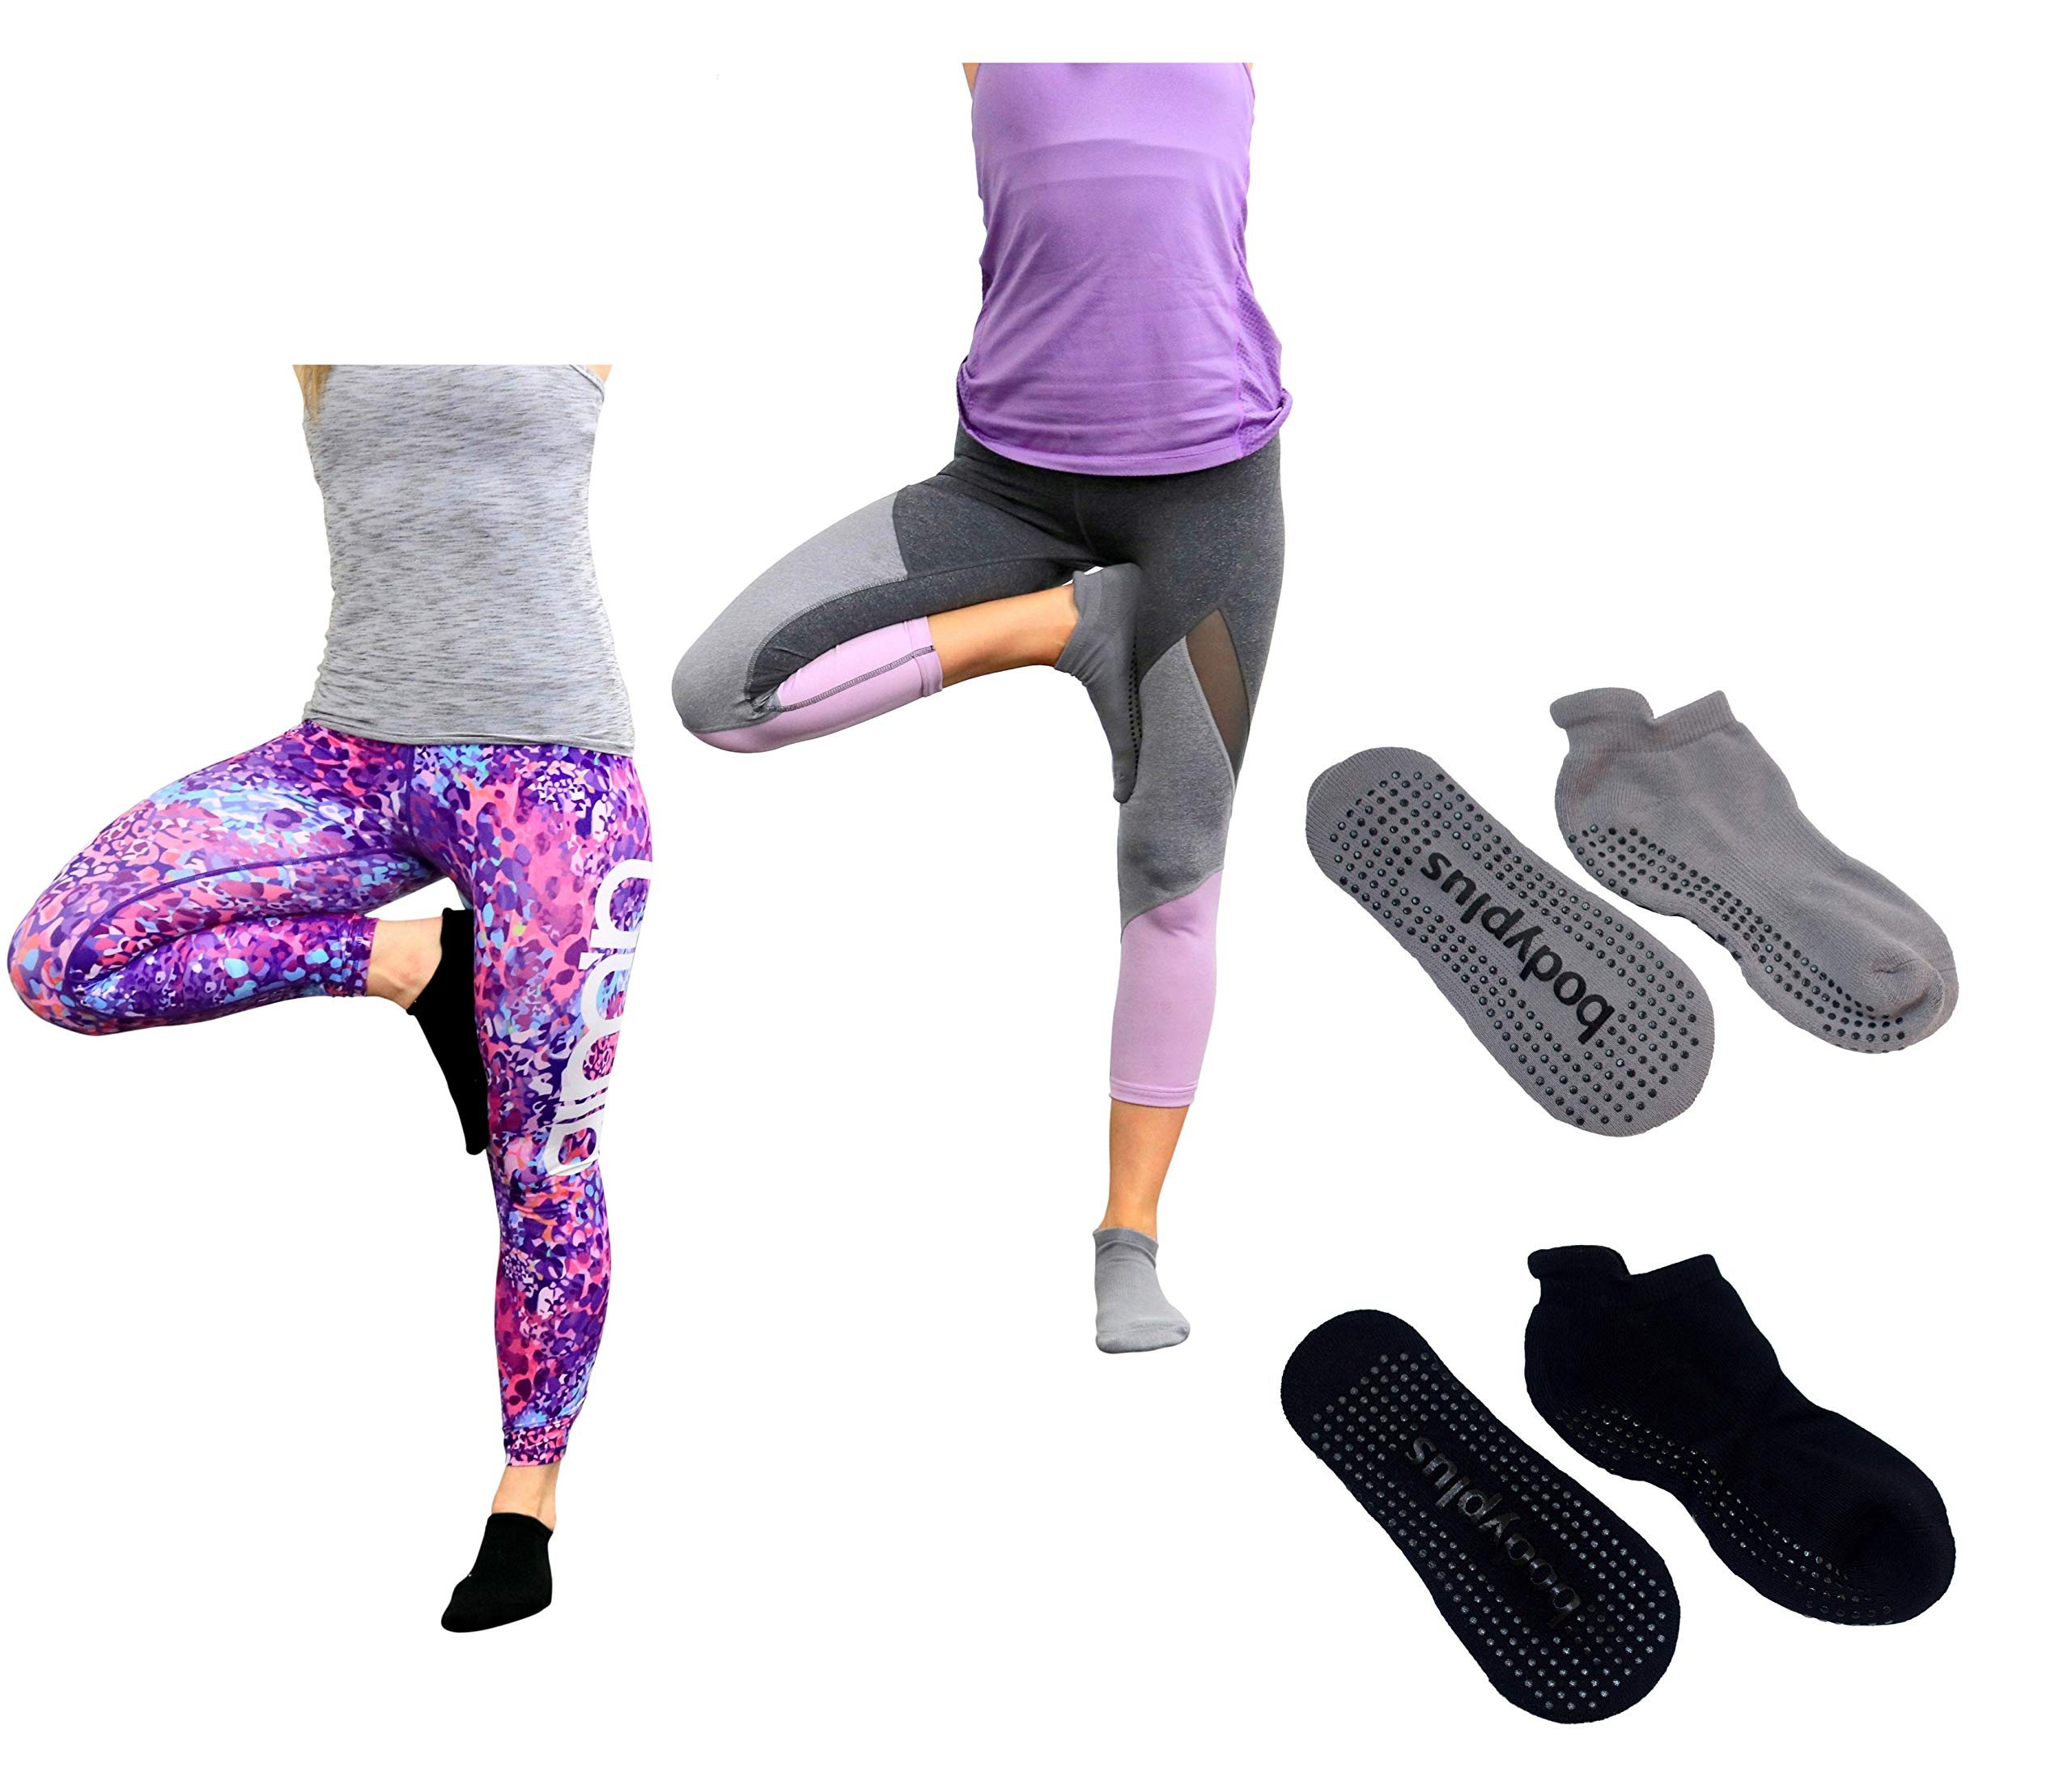 f157d86326964 Pretmanns Pilates Yoga Grip Socks – Non Slip Sticky Barre Yoga Socks for  Women – 2